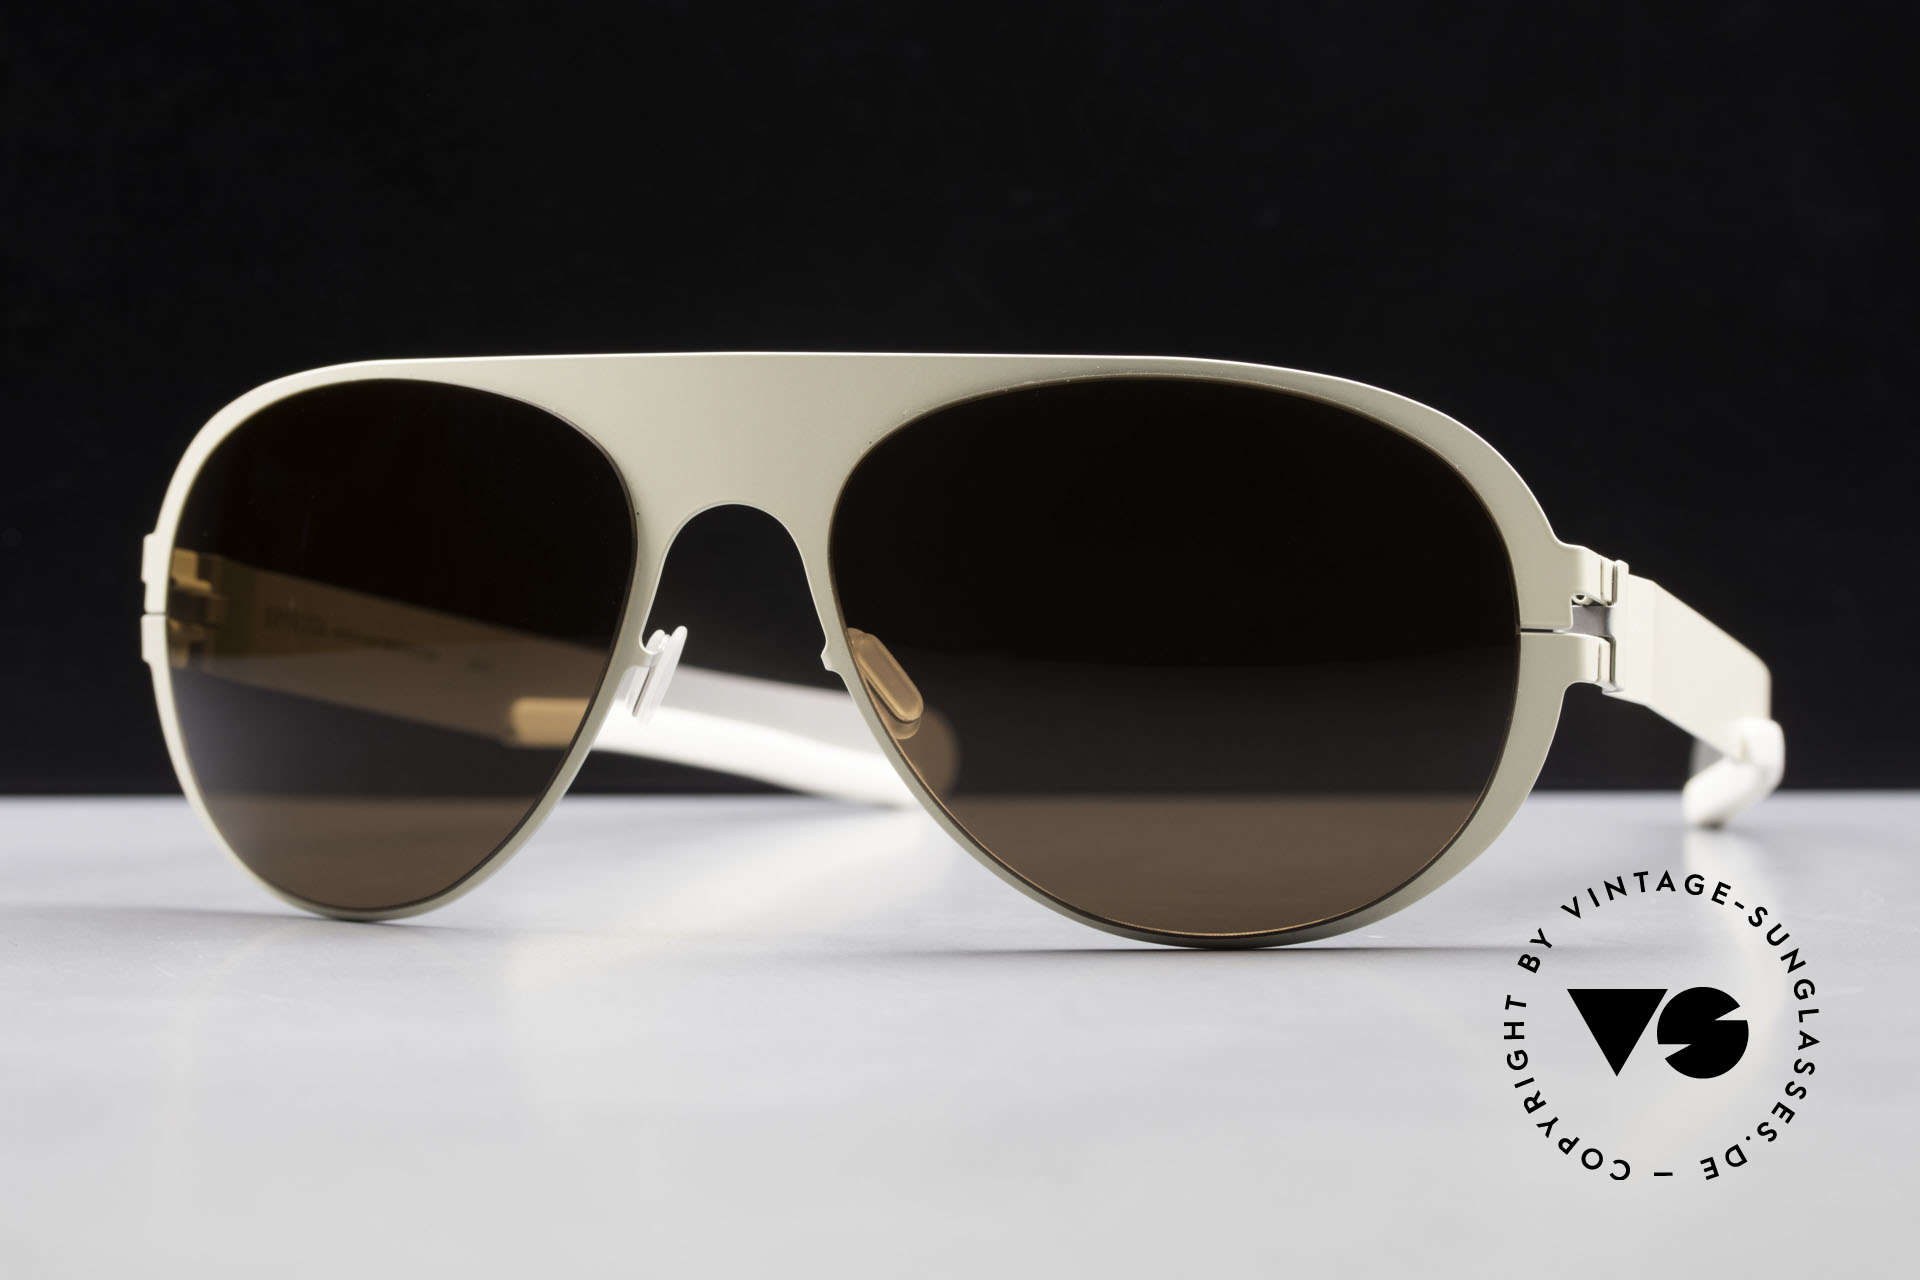 Mykita Winston Limited Designer Sunglasses, innovative and flexible metal frame = One size fits all!, Made for Men